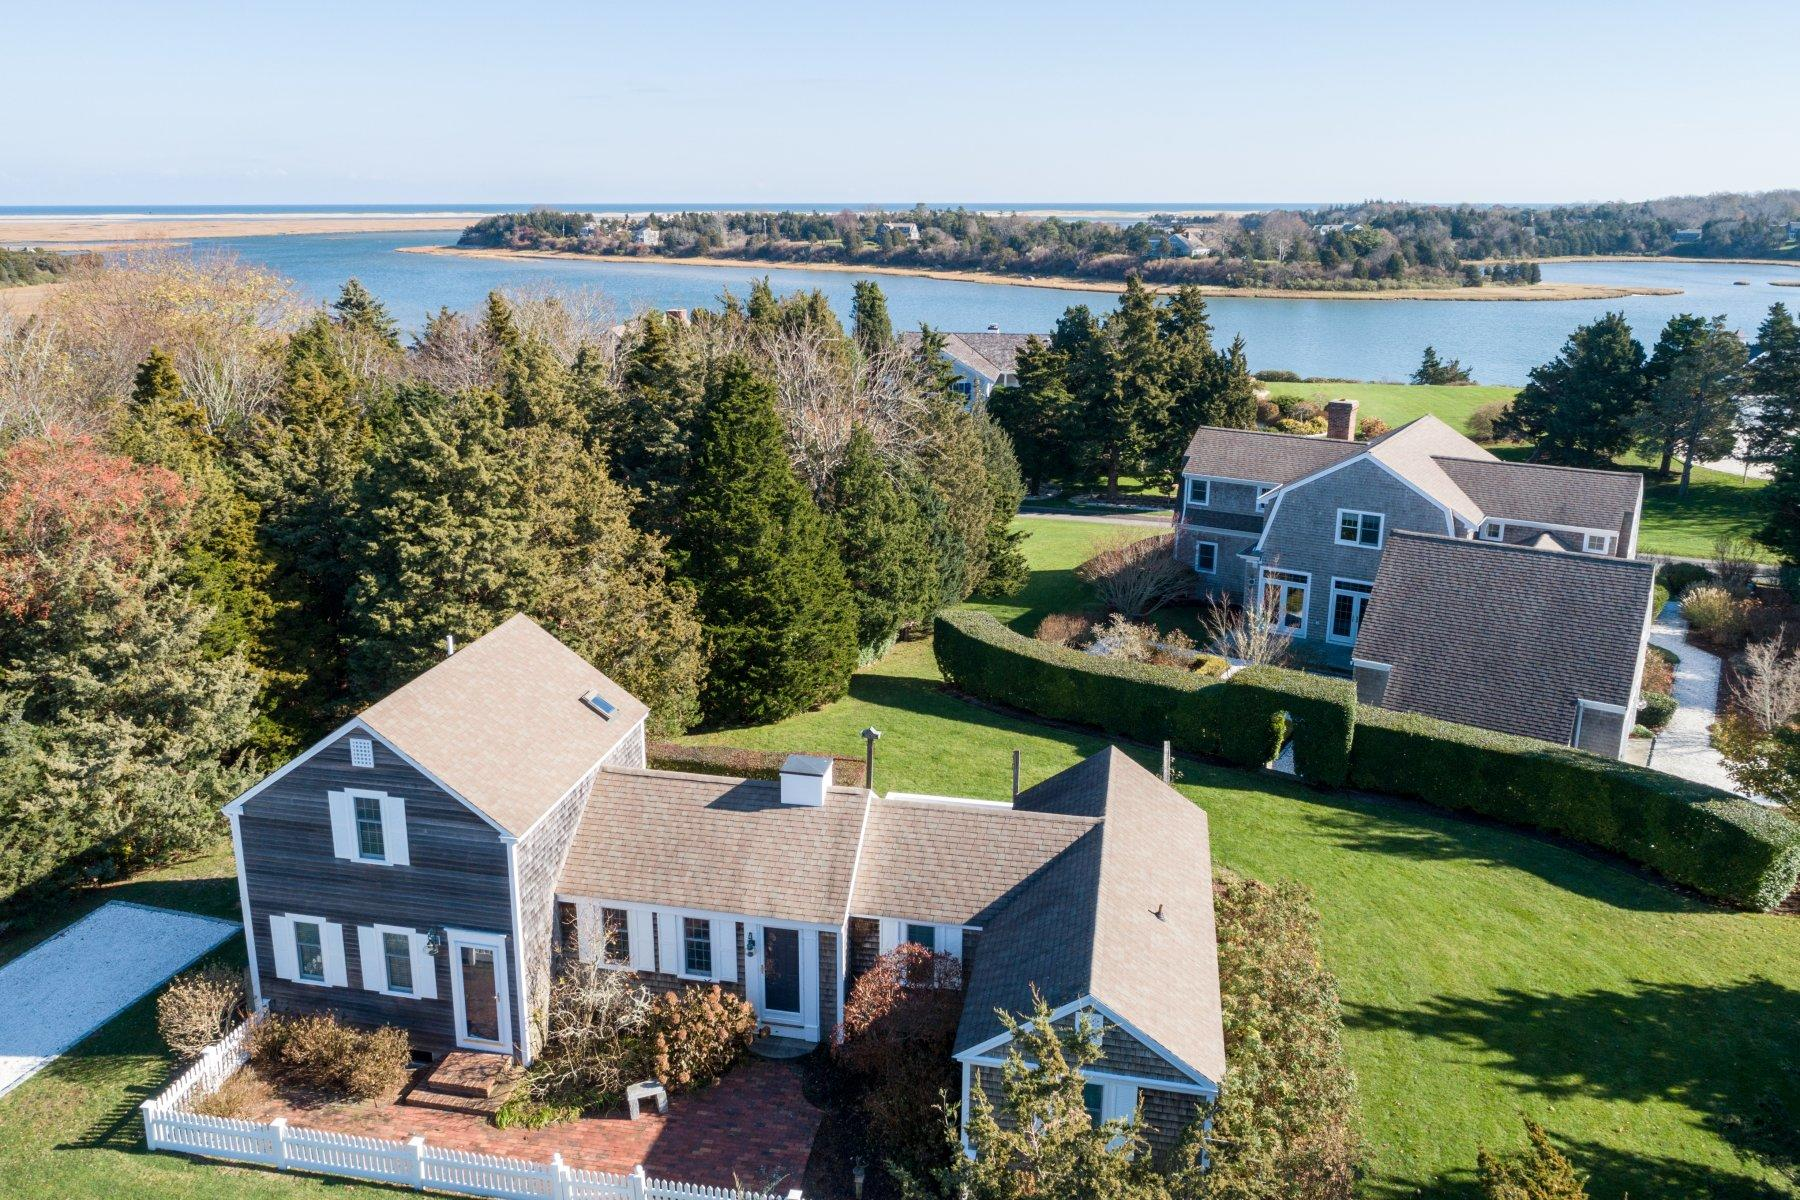 Single Family Homes for Sale at 45-55 Cove Road, Eastham, MA 45-55 Cove Road Eastham, Massachusetts 02642 United States